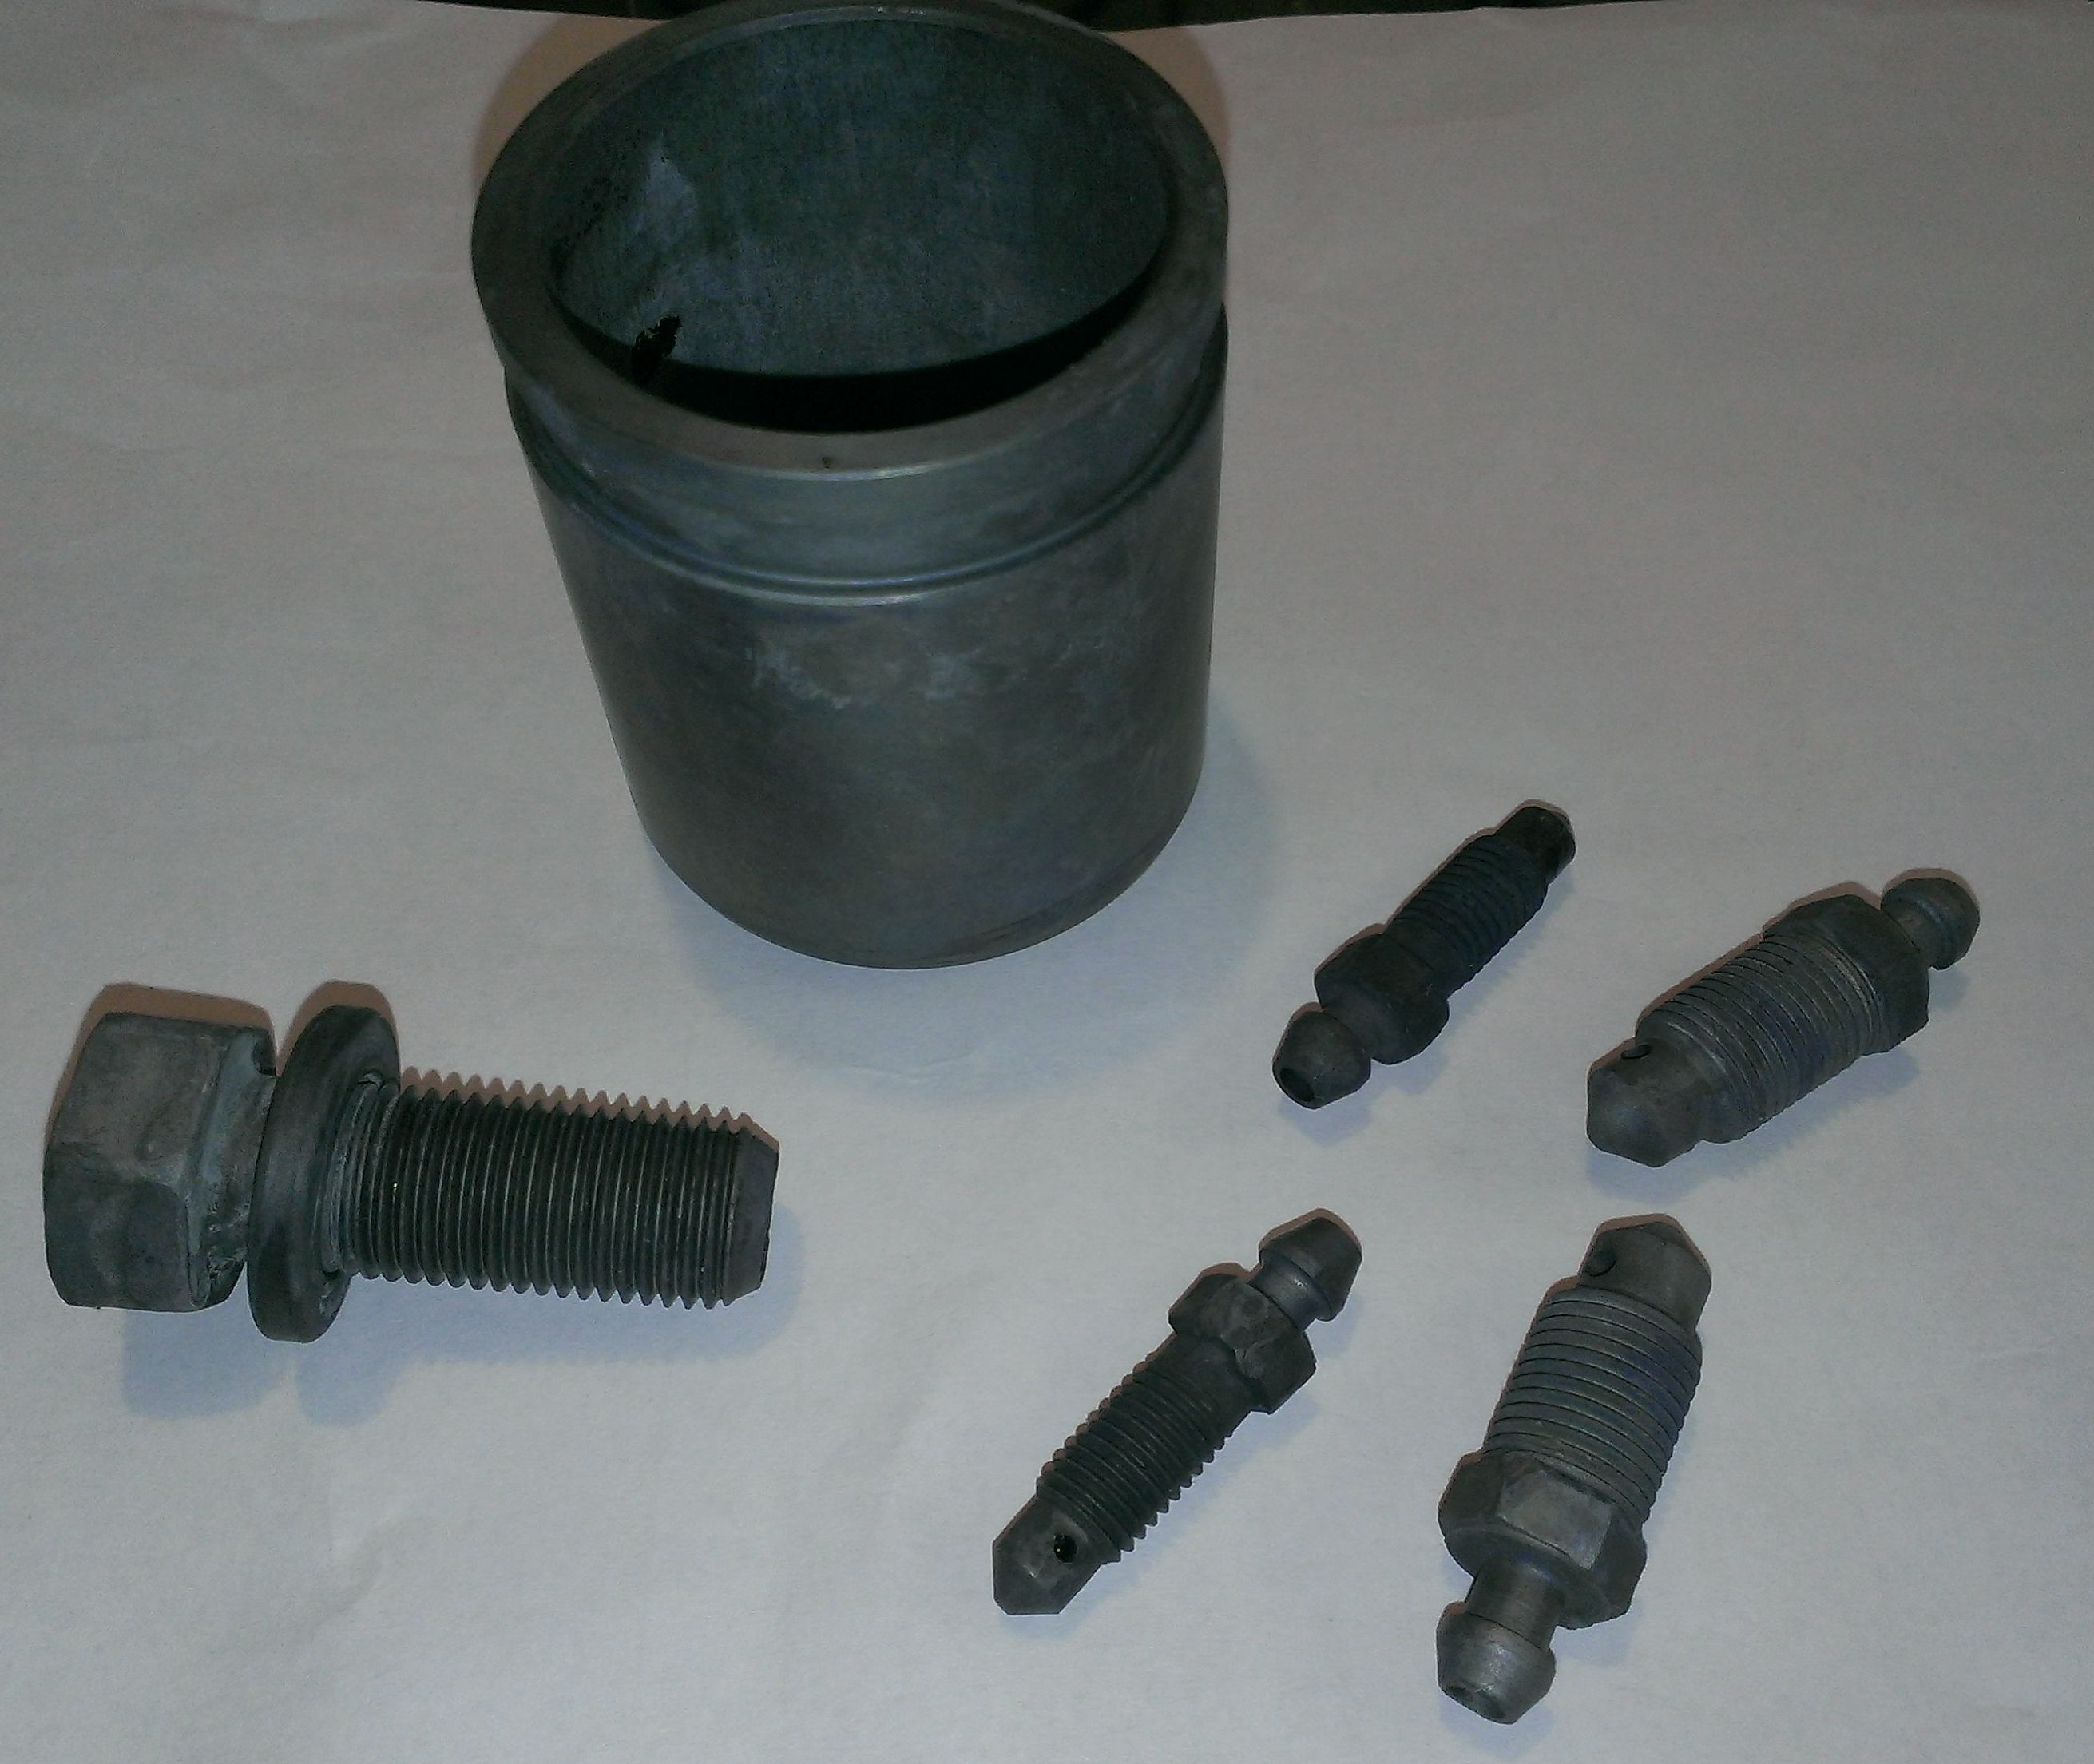 DIY Zinc Plating for Donor Nuts and Bolts